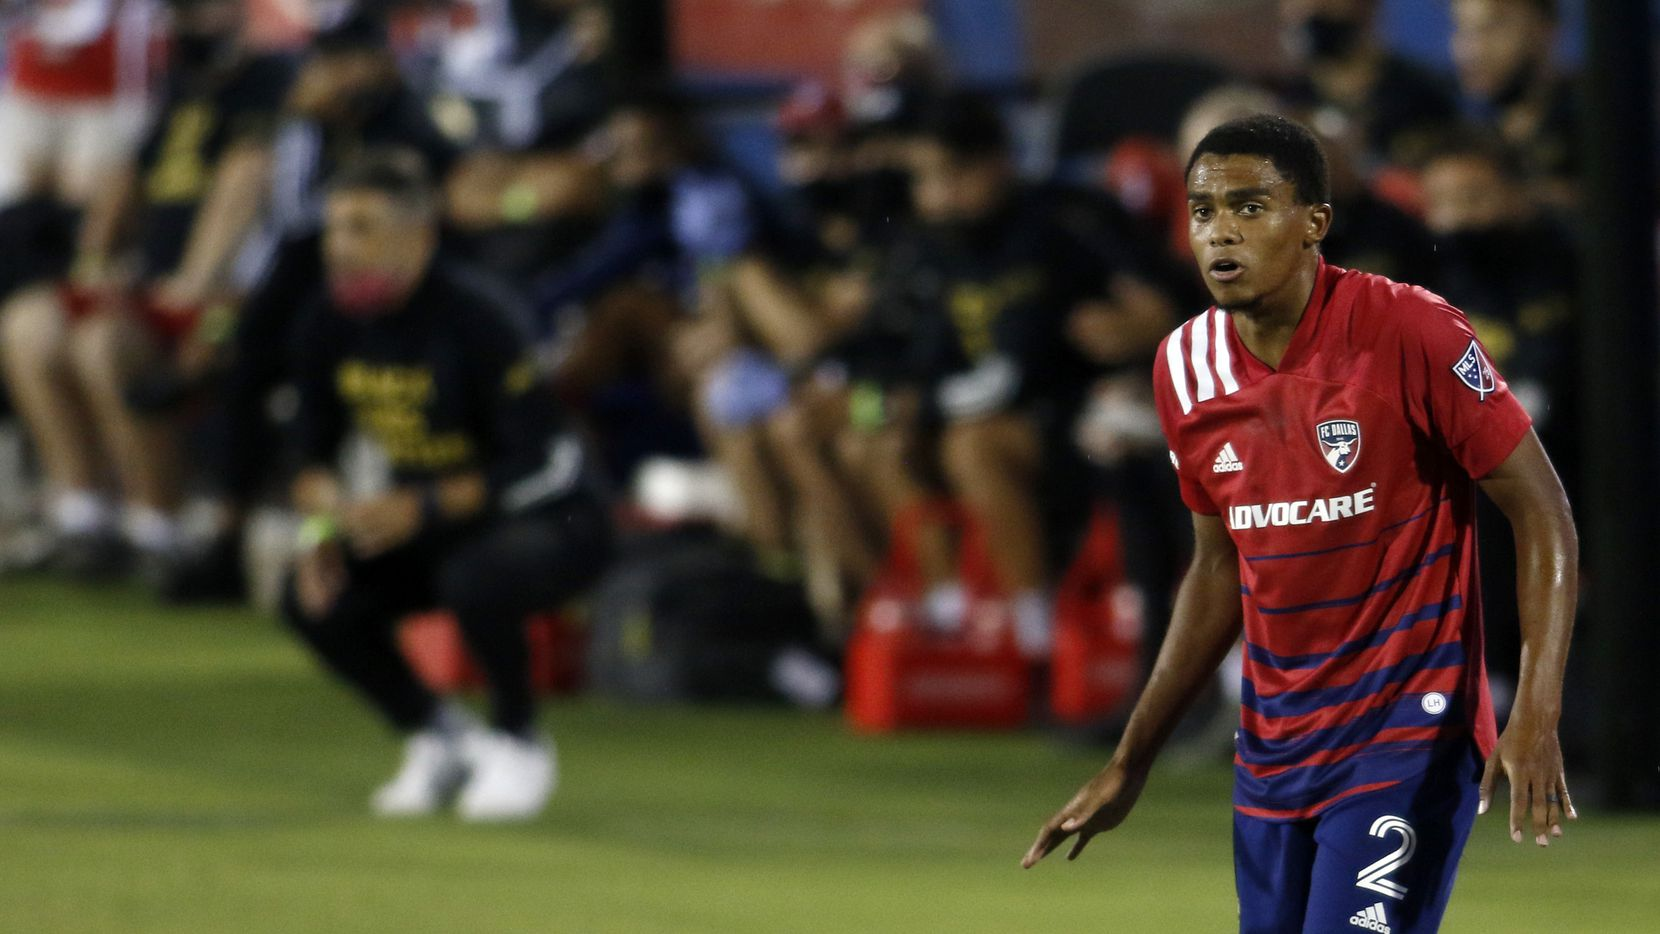 FC Dallas defender Reggie Cannon (2) stays alert in front of the team bench during first half action of their soccer match against Nashville FC. The MLS teams played their soccer match at Toyota Stadium in Frisco on August 16, 2020.